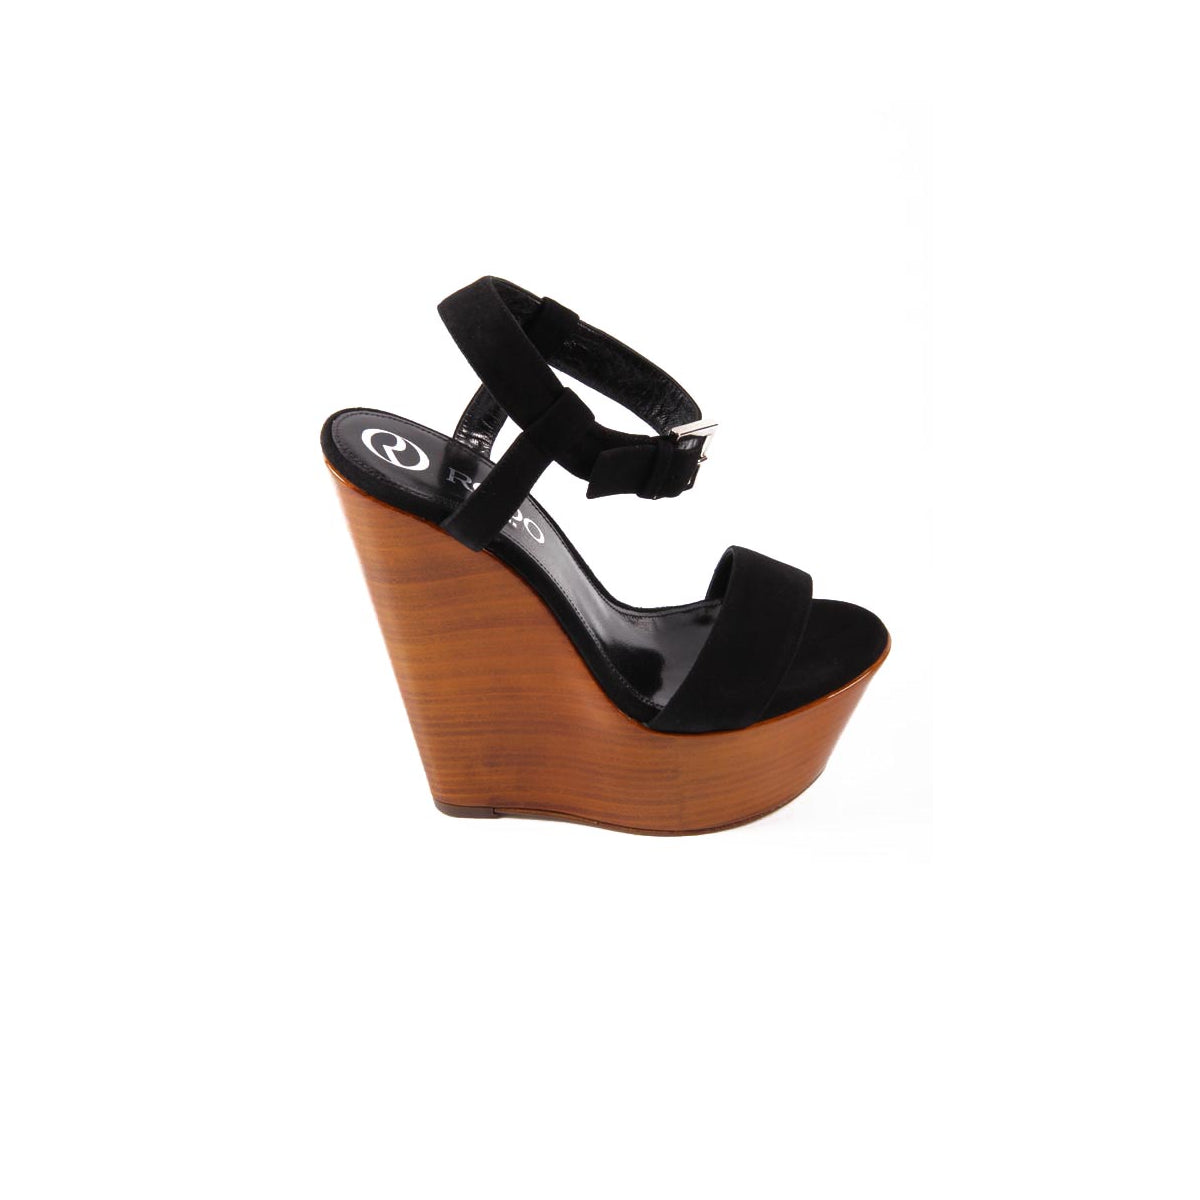 Rodo ladies sandal S8624 400 900